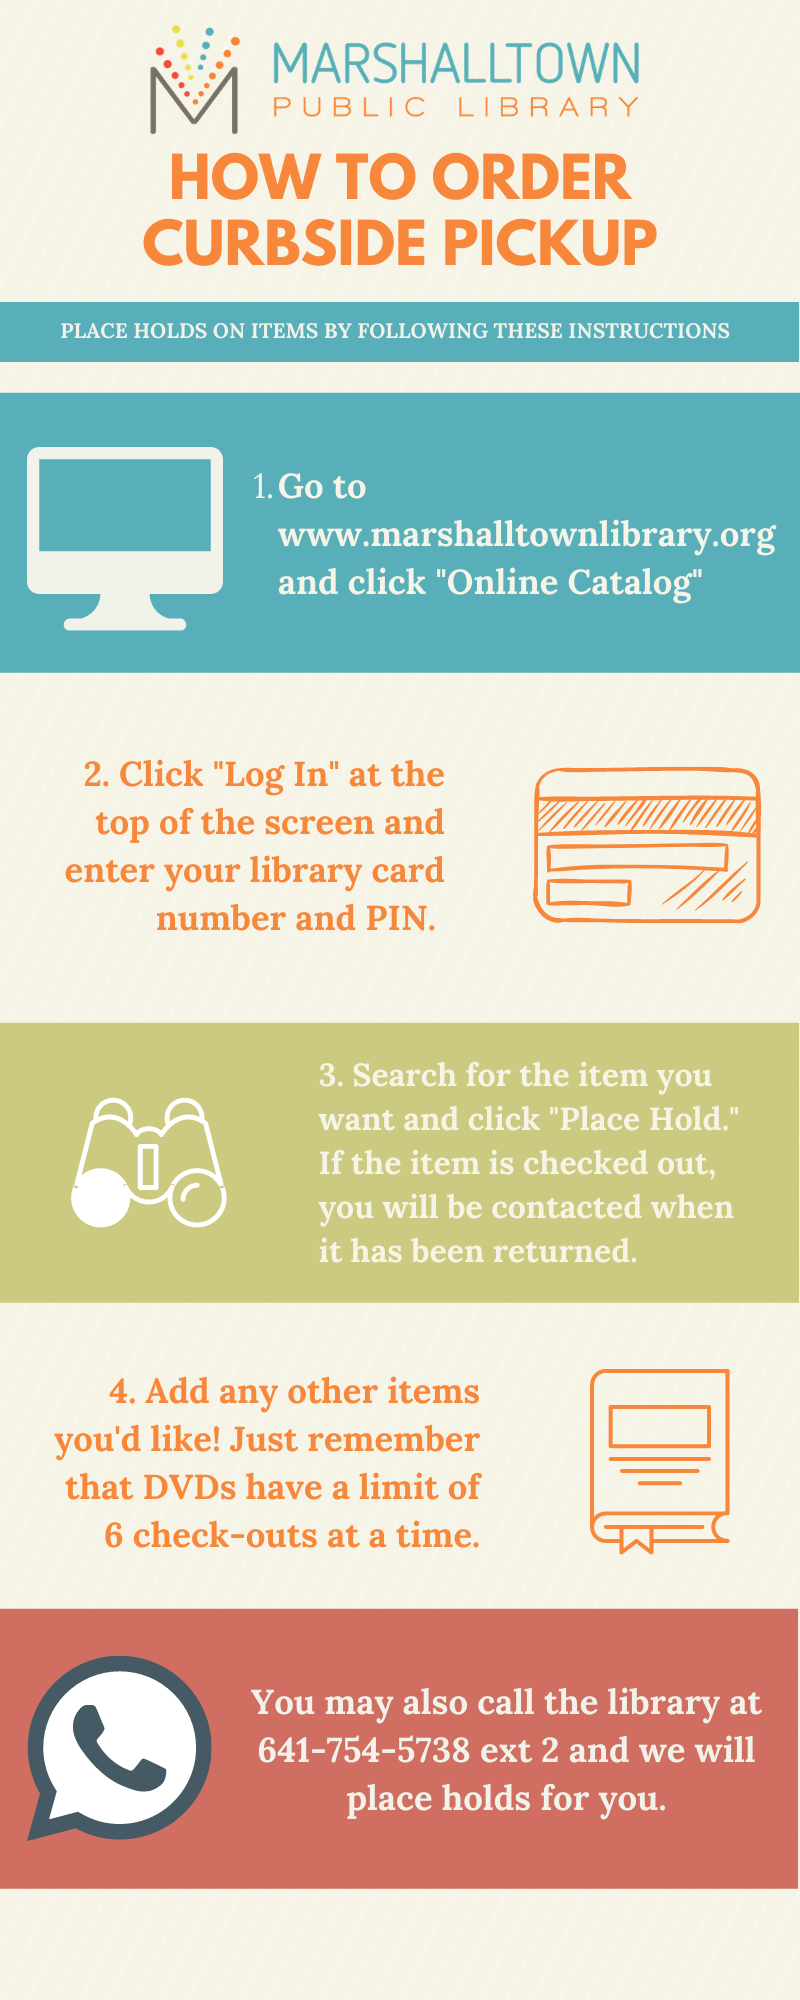 How to Order Curbside Pickup infographic. First, go to www.marshalltownlibrary.org and click Online Catalog. Click Log In at the top of the screen and enter your library card number with no spaces and PIN. Search for the item you want and click Place Hold. If the item is checked out, you will be contacted when it has been returned. Then, add any other items you'd like. Just remember that DVDs have a limit of 6 check-outs at a time. You can also call the library at 641-754-5738 ext. 2 and we will put items on hold for you.